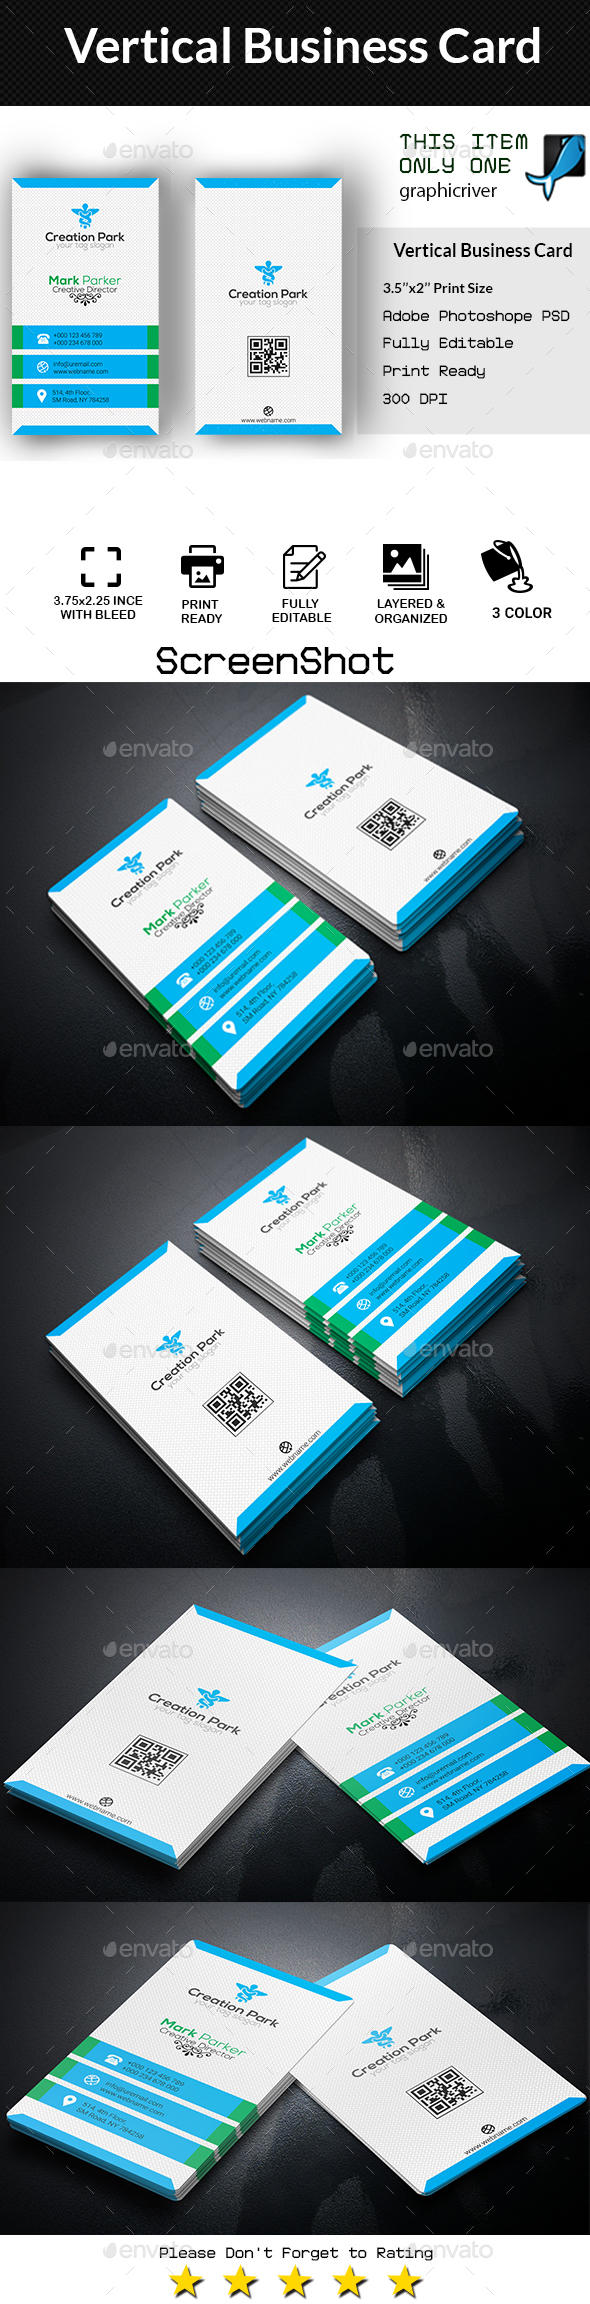 GraphicRiver Vertical Business Card 20359486